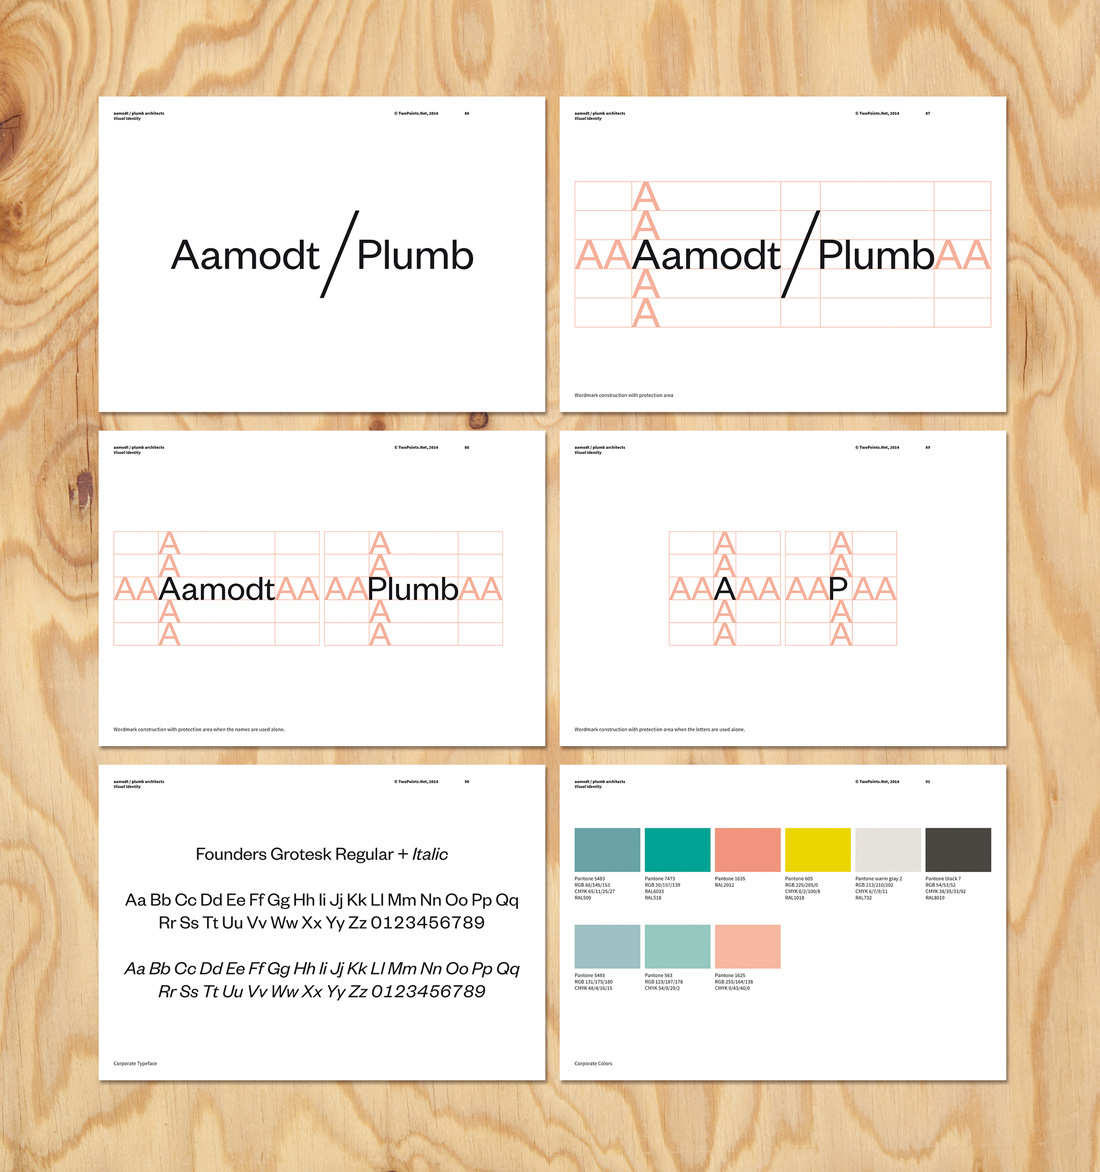 Aamodt/Plumb / Twopoints (9)